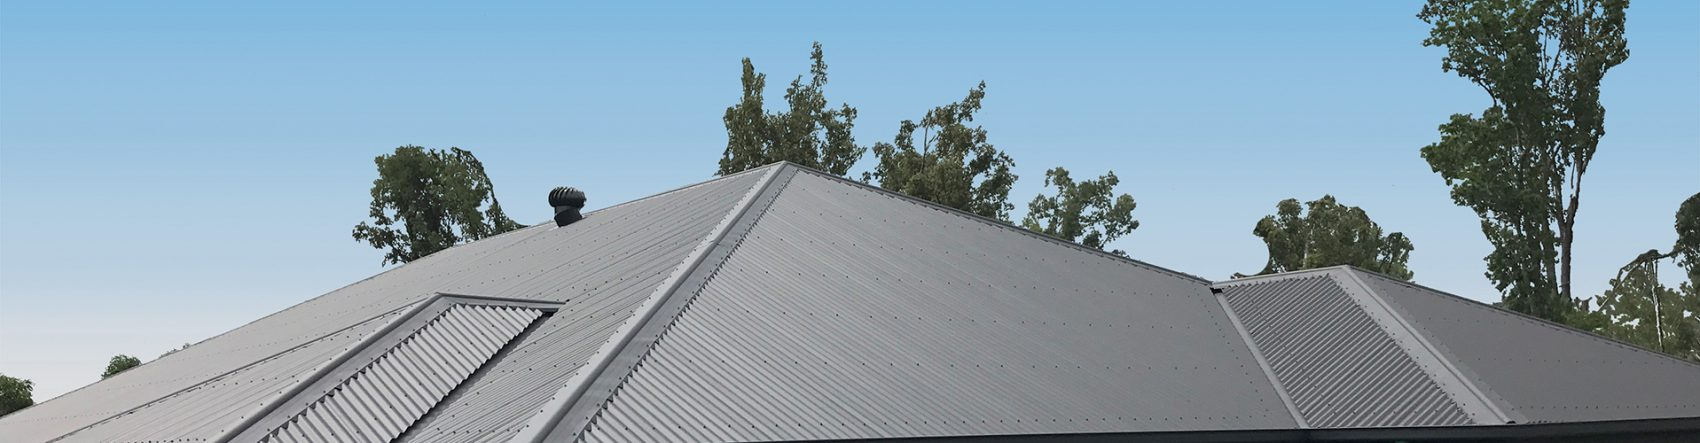 Pantex Matt Steel Roof